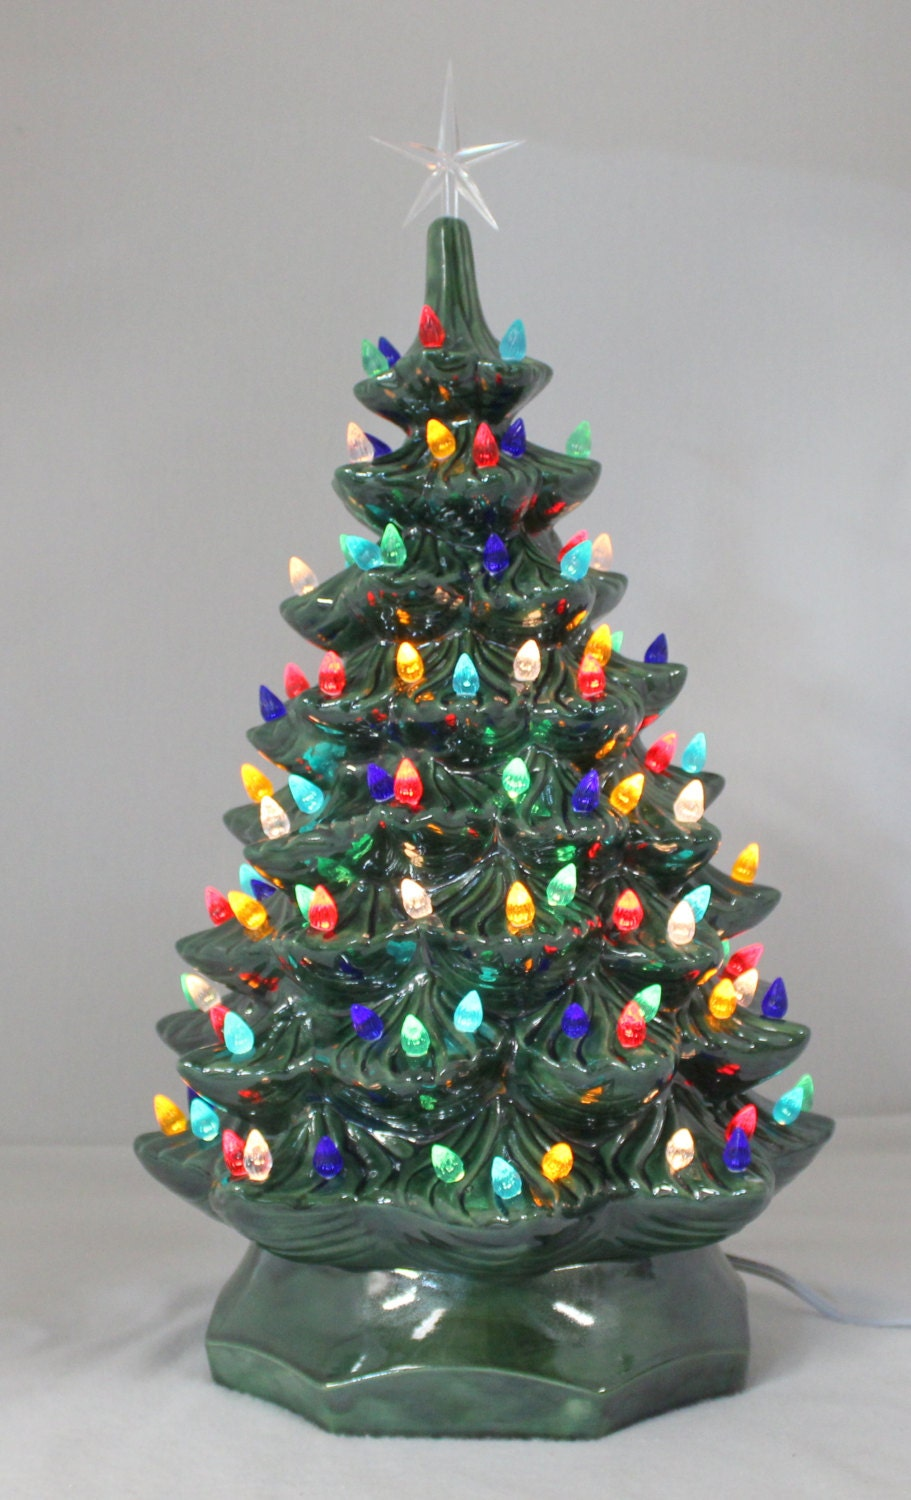 Ceramic Christmas Tree 21 Plane Base Lighted By